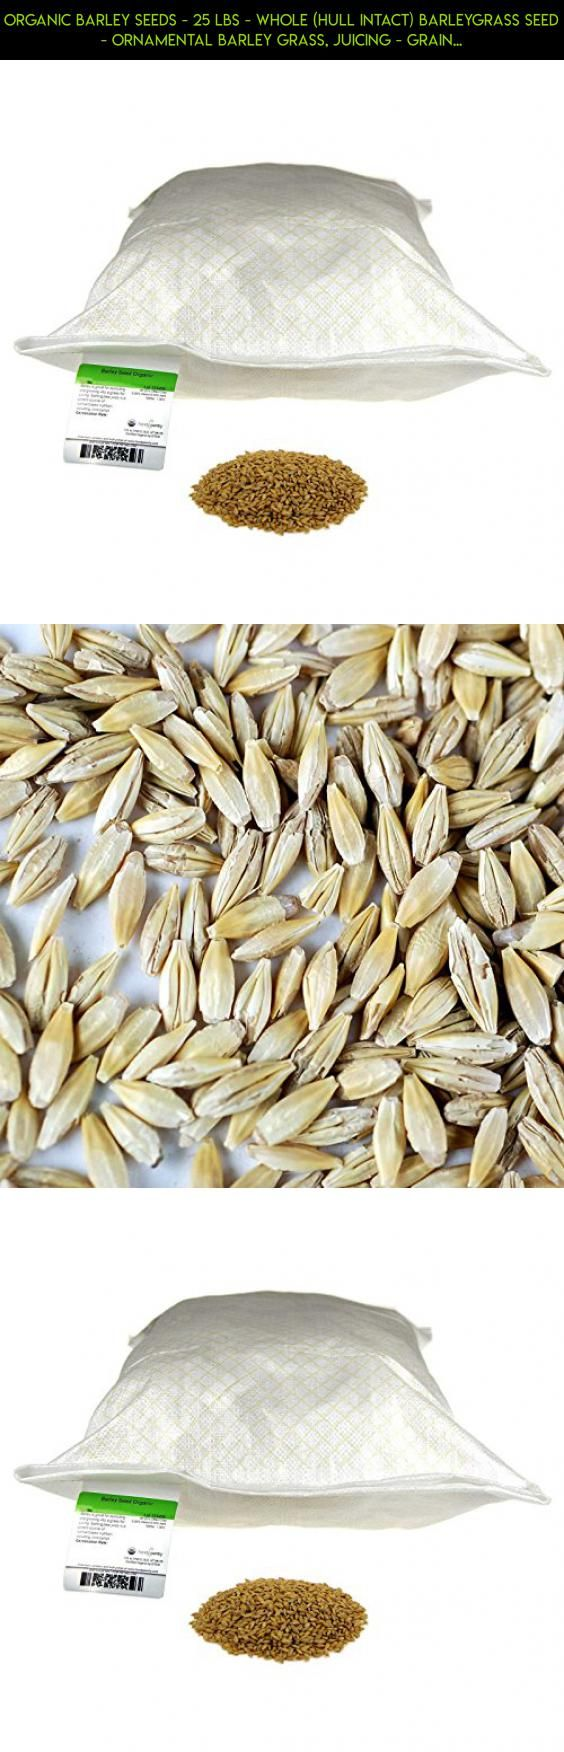 Organic Barley Seeds - 25 Lbs - Whole (Hull Intact) Barleygrass Seed - Ornamental Barley Grass, Juicing - Grain for Beer Making, Emergency Food Storage & More #fpv #parts #plans #storage #racing #tech #kit #products #pantry #drone #camera #shopping #technology #gadgets